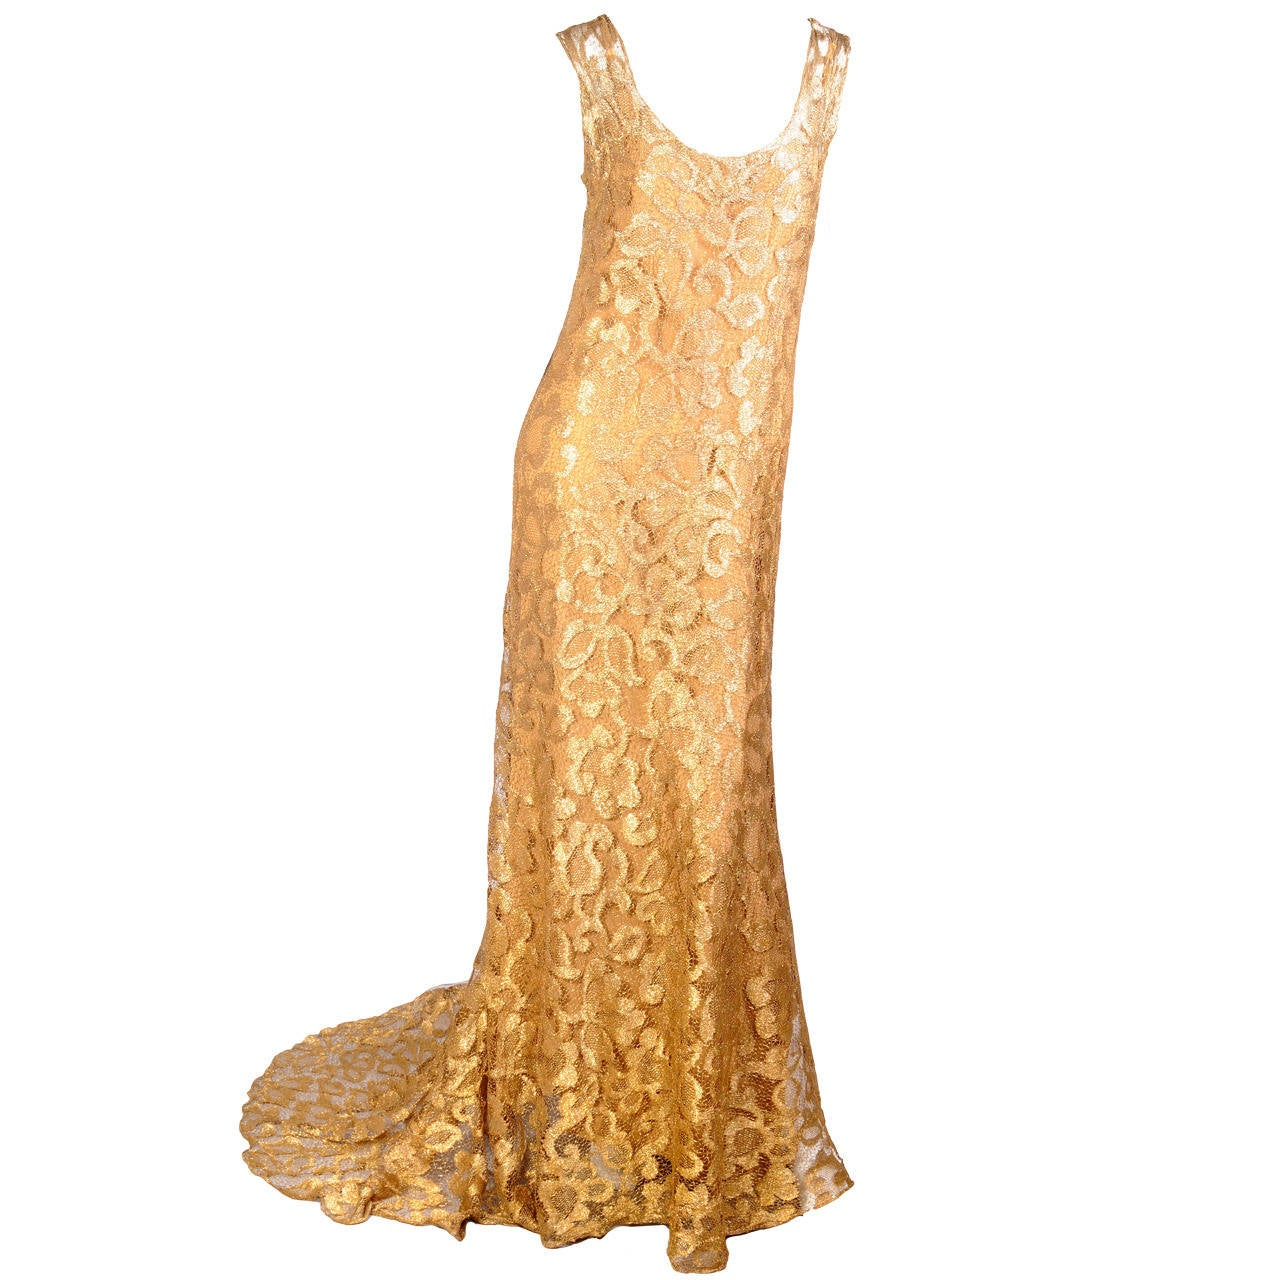 1930's Rare Metallic Gold Lace Gown with Train 1